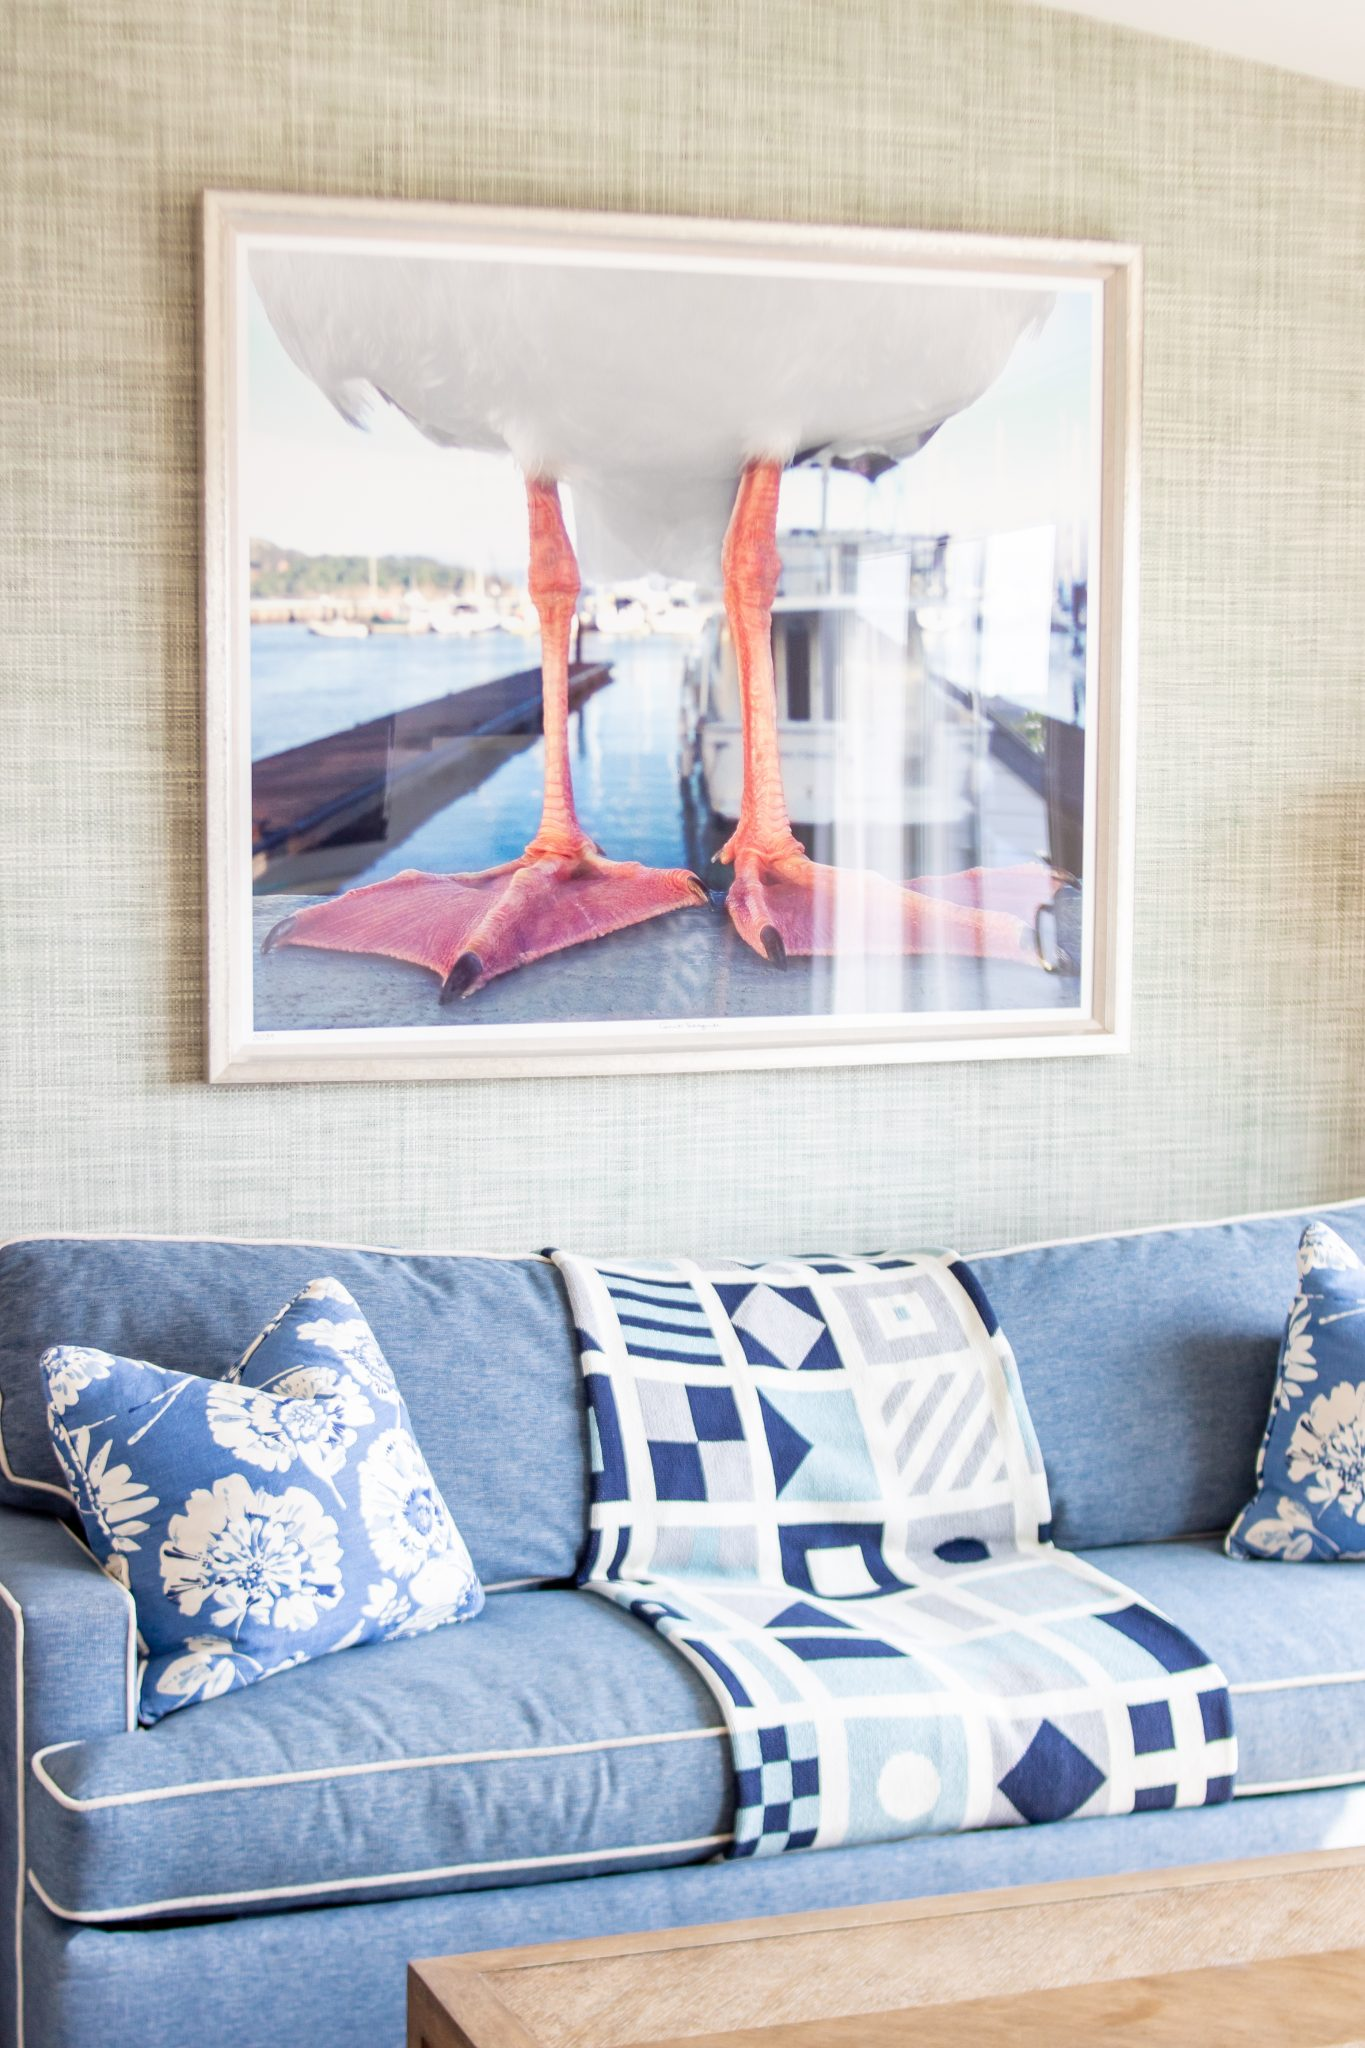 Winnetu - West Chop One Bedroom Suite - Seagull Feet Photograph above navy couch with Grasscloth wallpaper